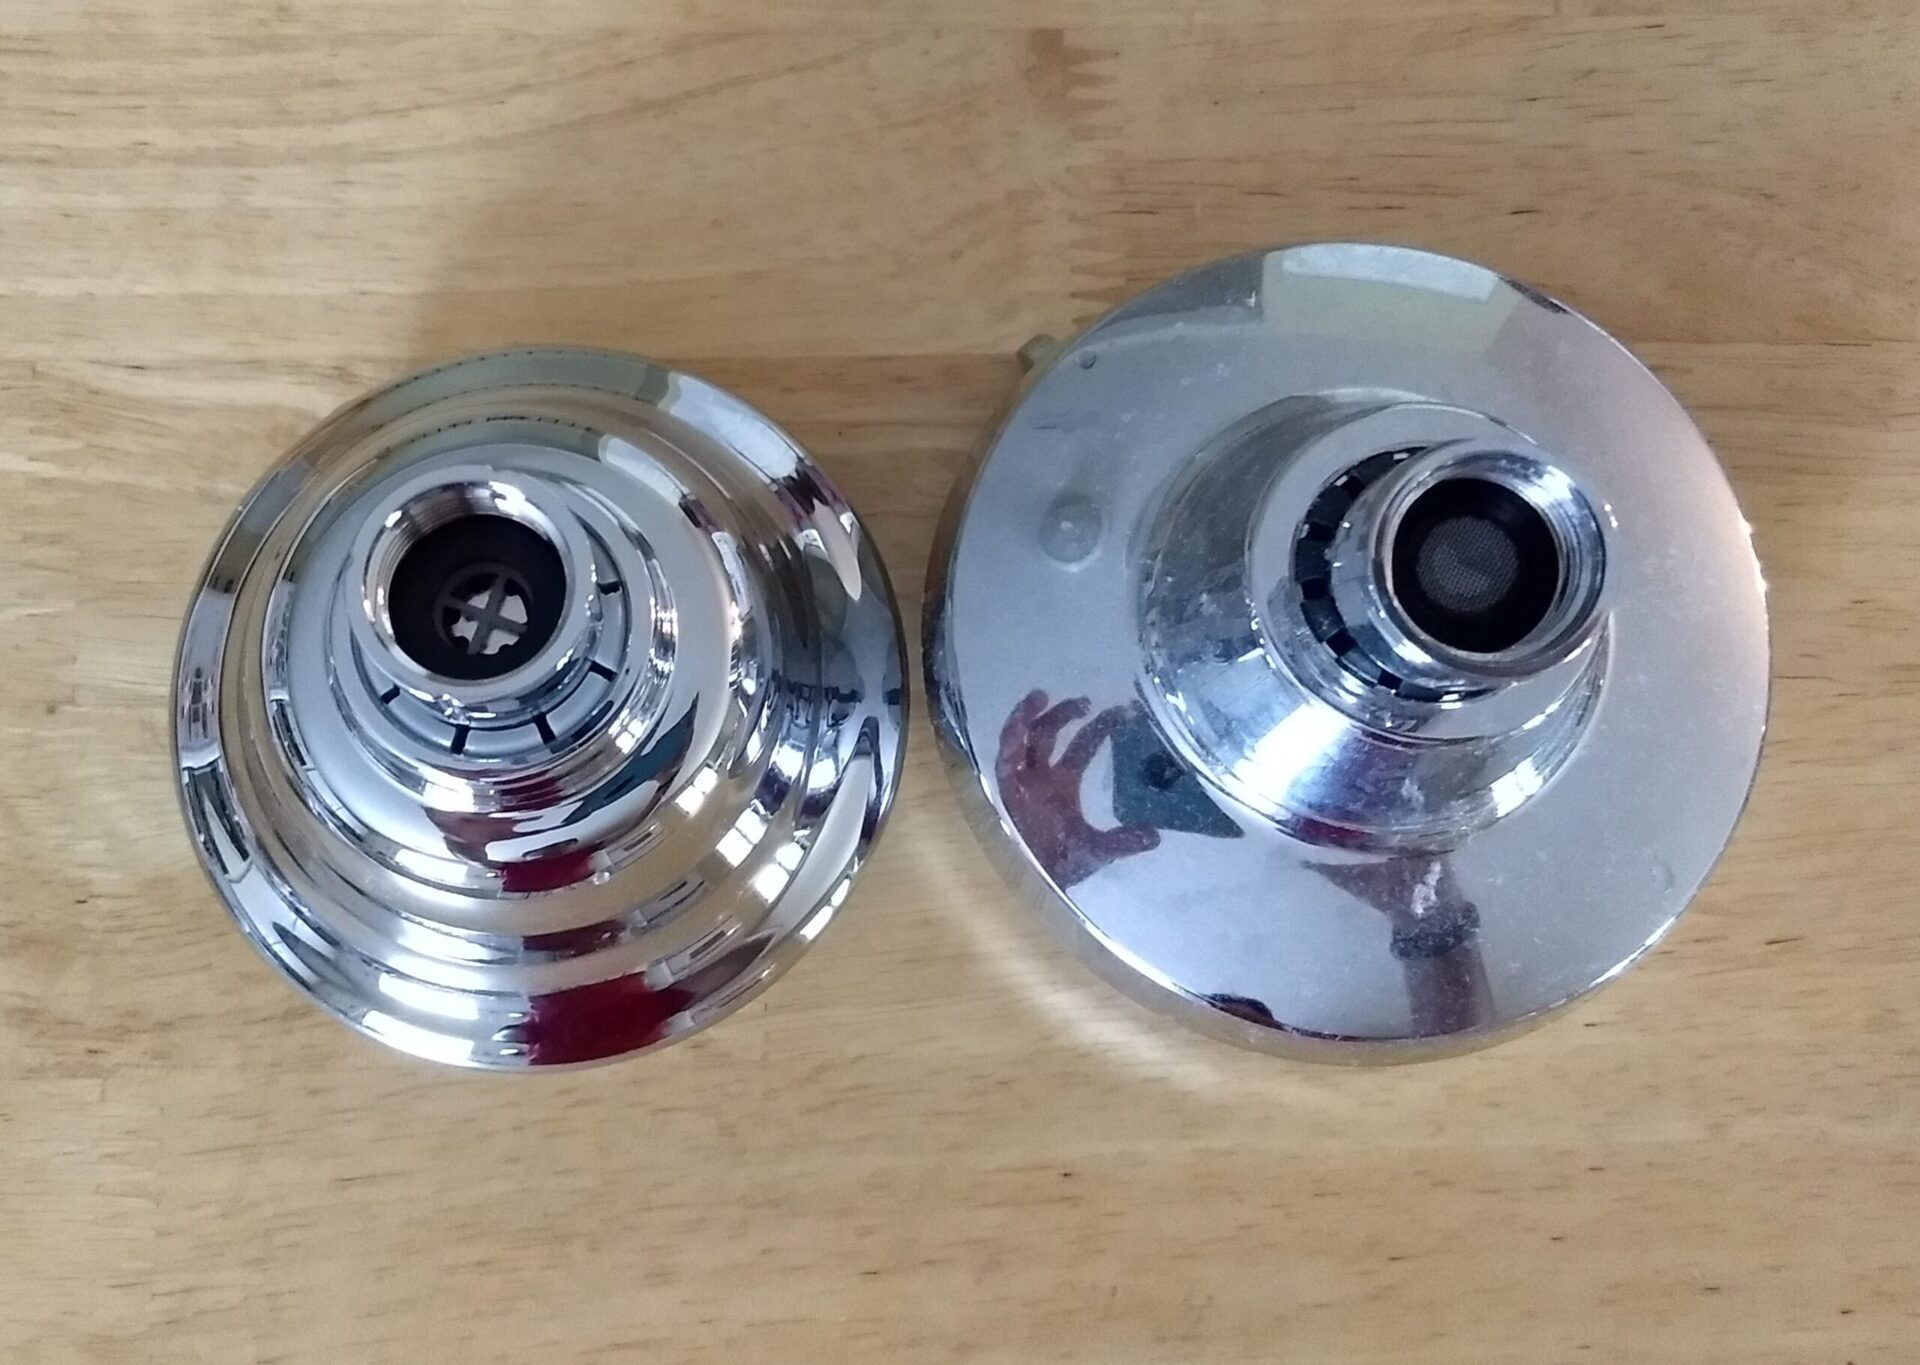 Easy Home 5 Function Showerhead Aldi Reviewer